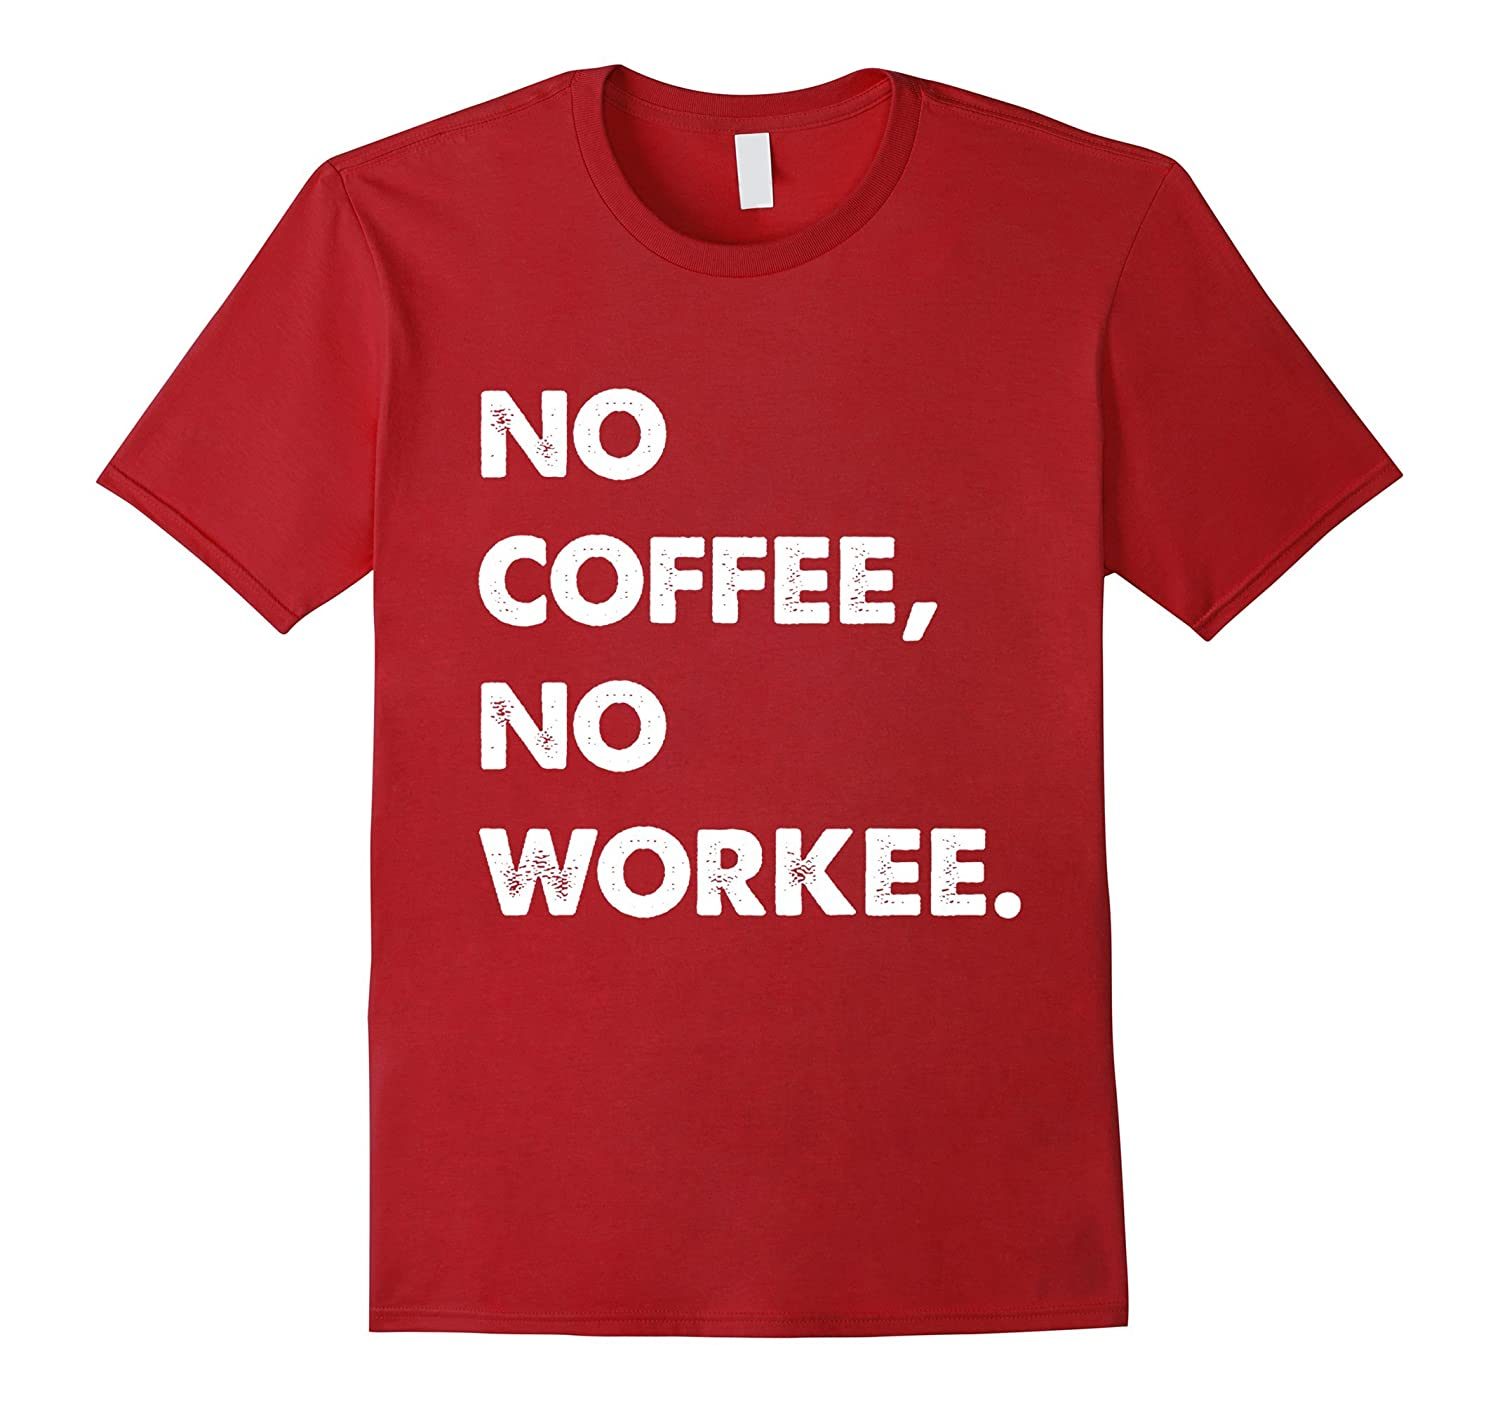 64af47d68 No Coffee, No Workee T-Shirt, No Coffee No Workee Tee.-ANZ - Anztshirt